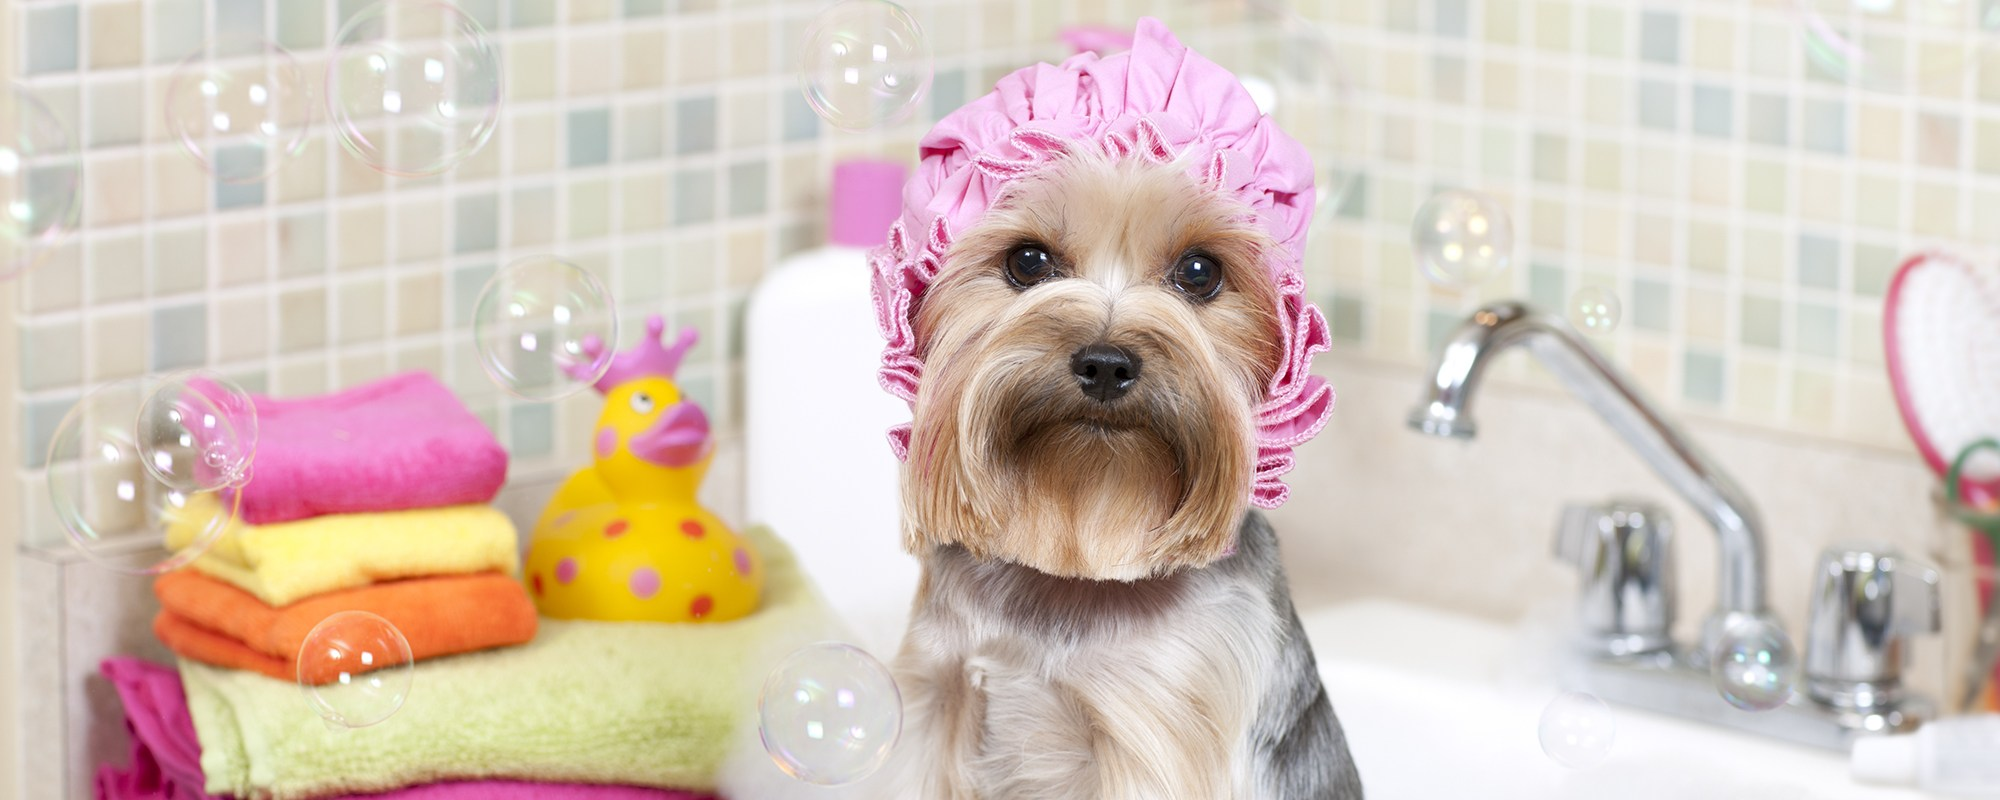 Yorkie taking a bubble bath in her pink bath cap.PLEASE CLICK ON THE IMAGE BELOW TO SEE MY DOGGY LIGHTBOX PORTFOLIO: